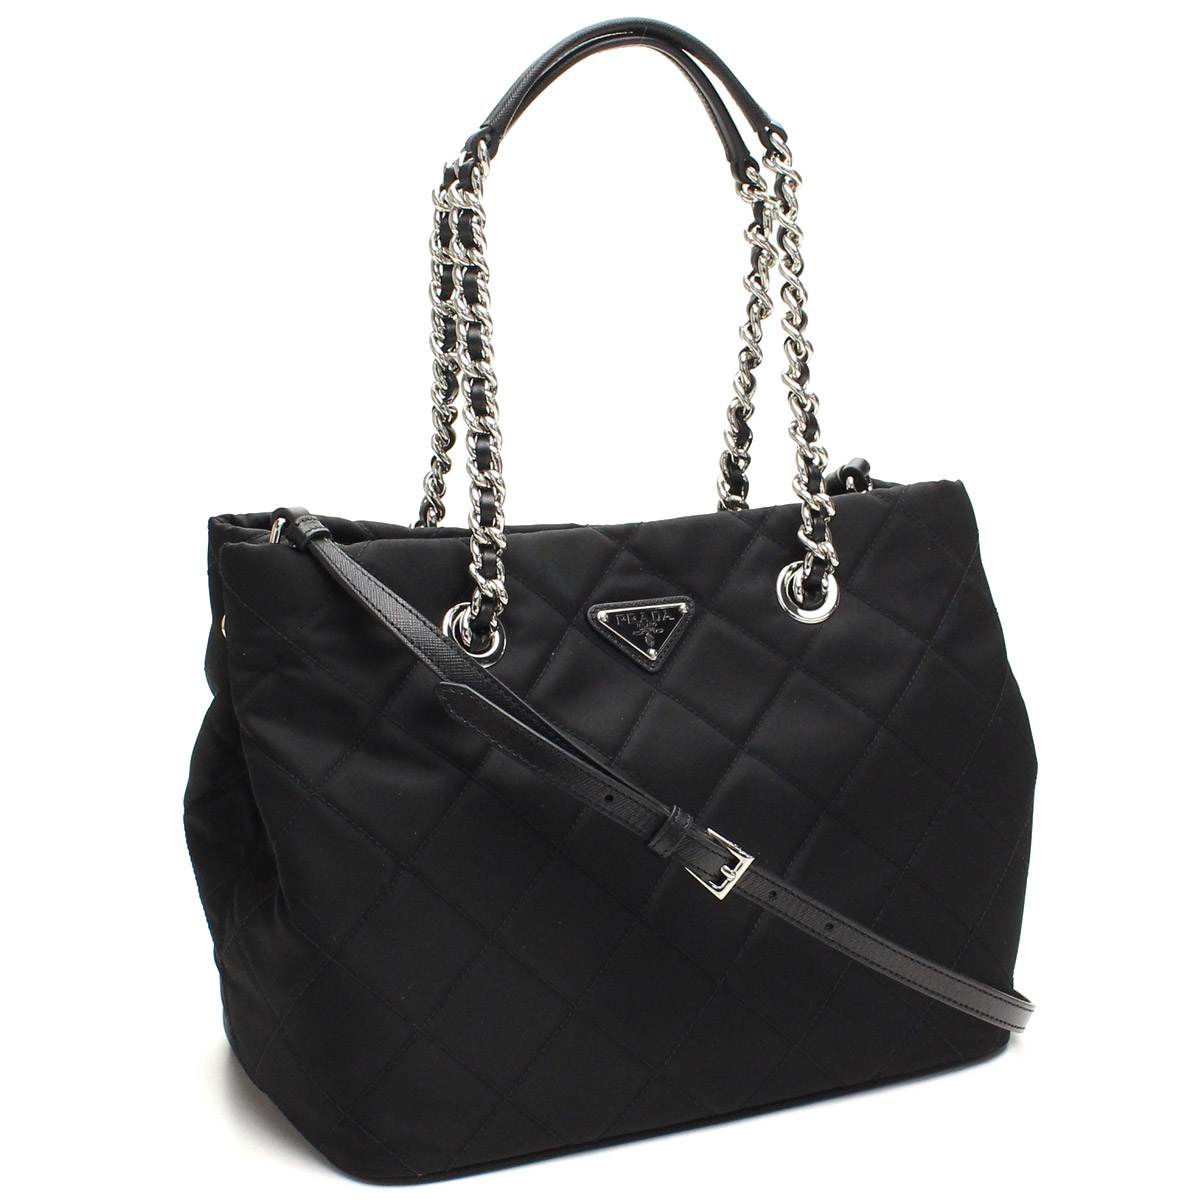 4a4fa5b4b527 Bighit The total brand wholesale  Prada outlet PRADA (OUTLET) tote bag  1BG740-O-2AS3-F0002 NERO black( taxfree send by EMS authentic A brand new  item ) ...